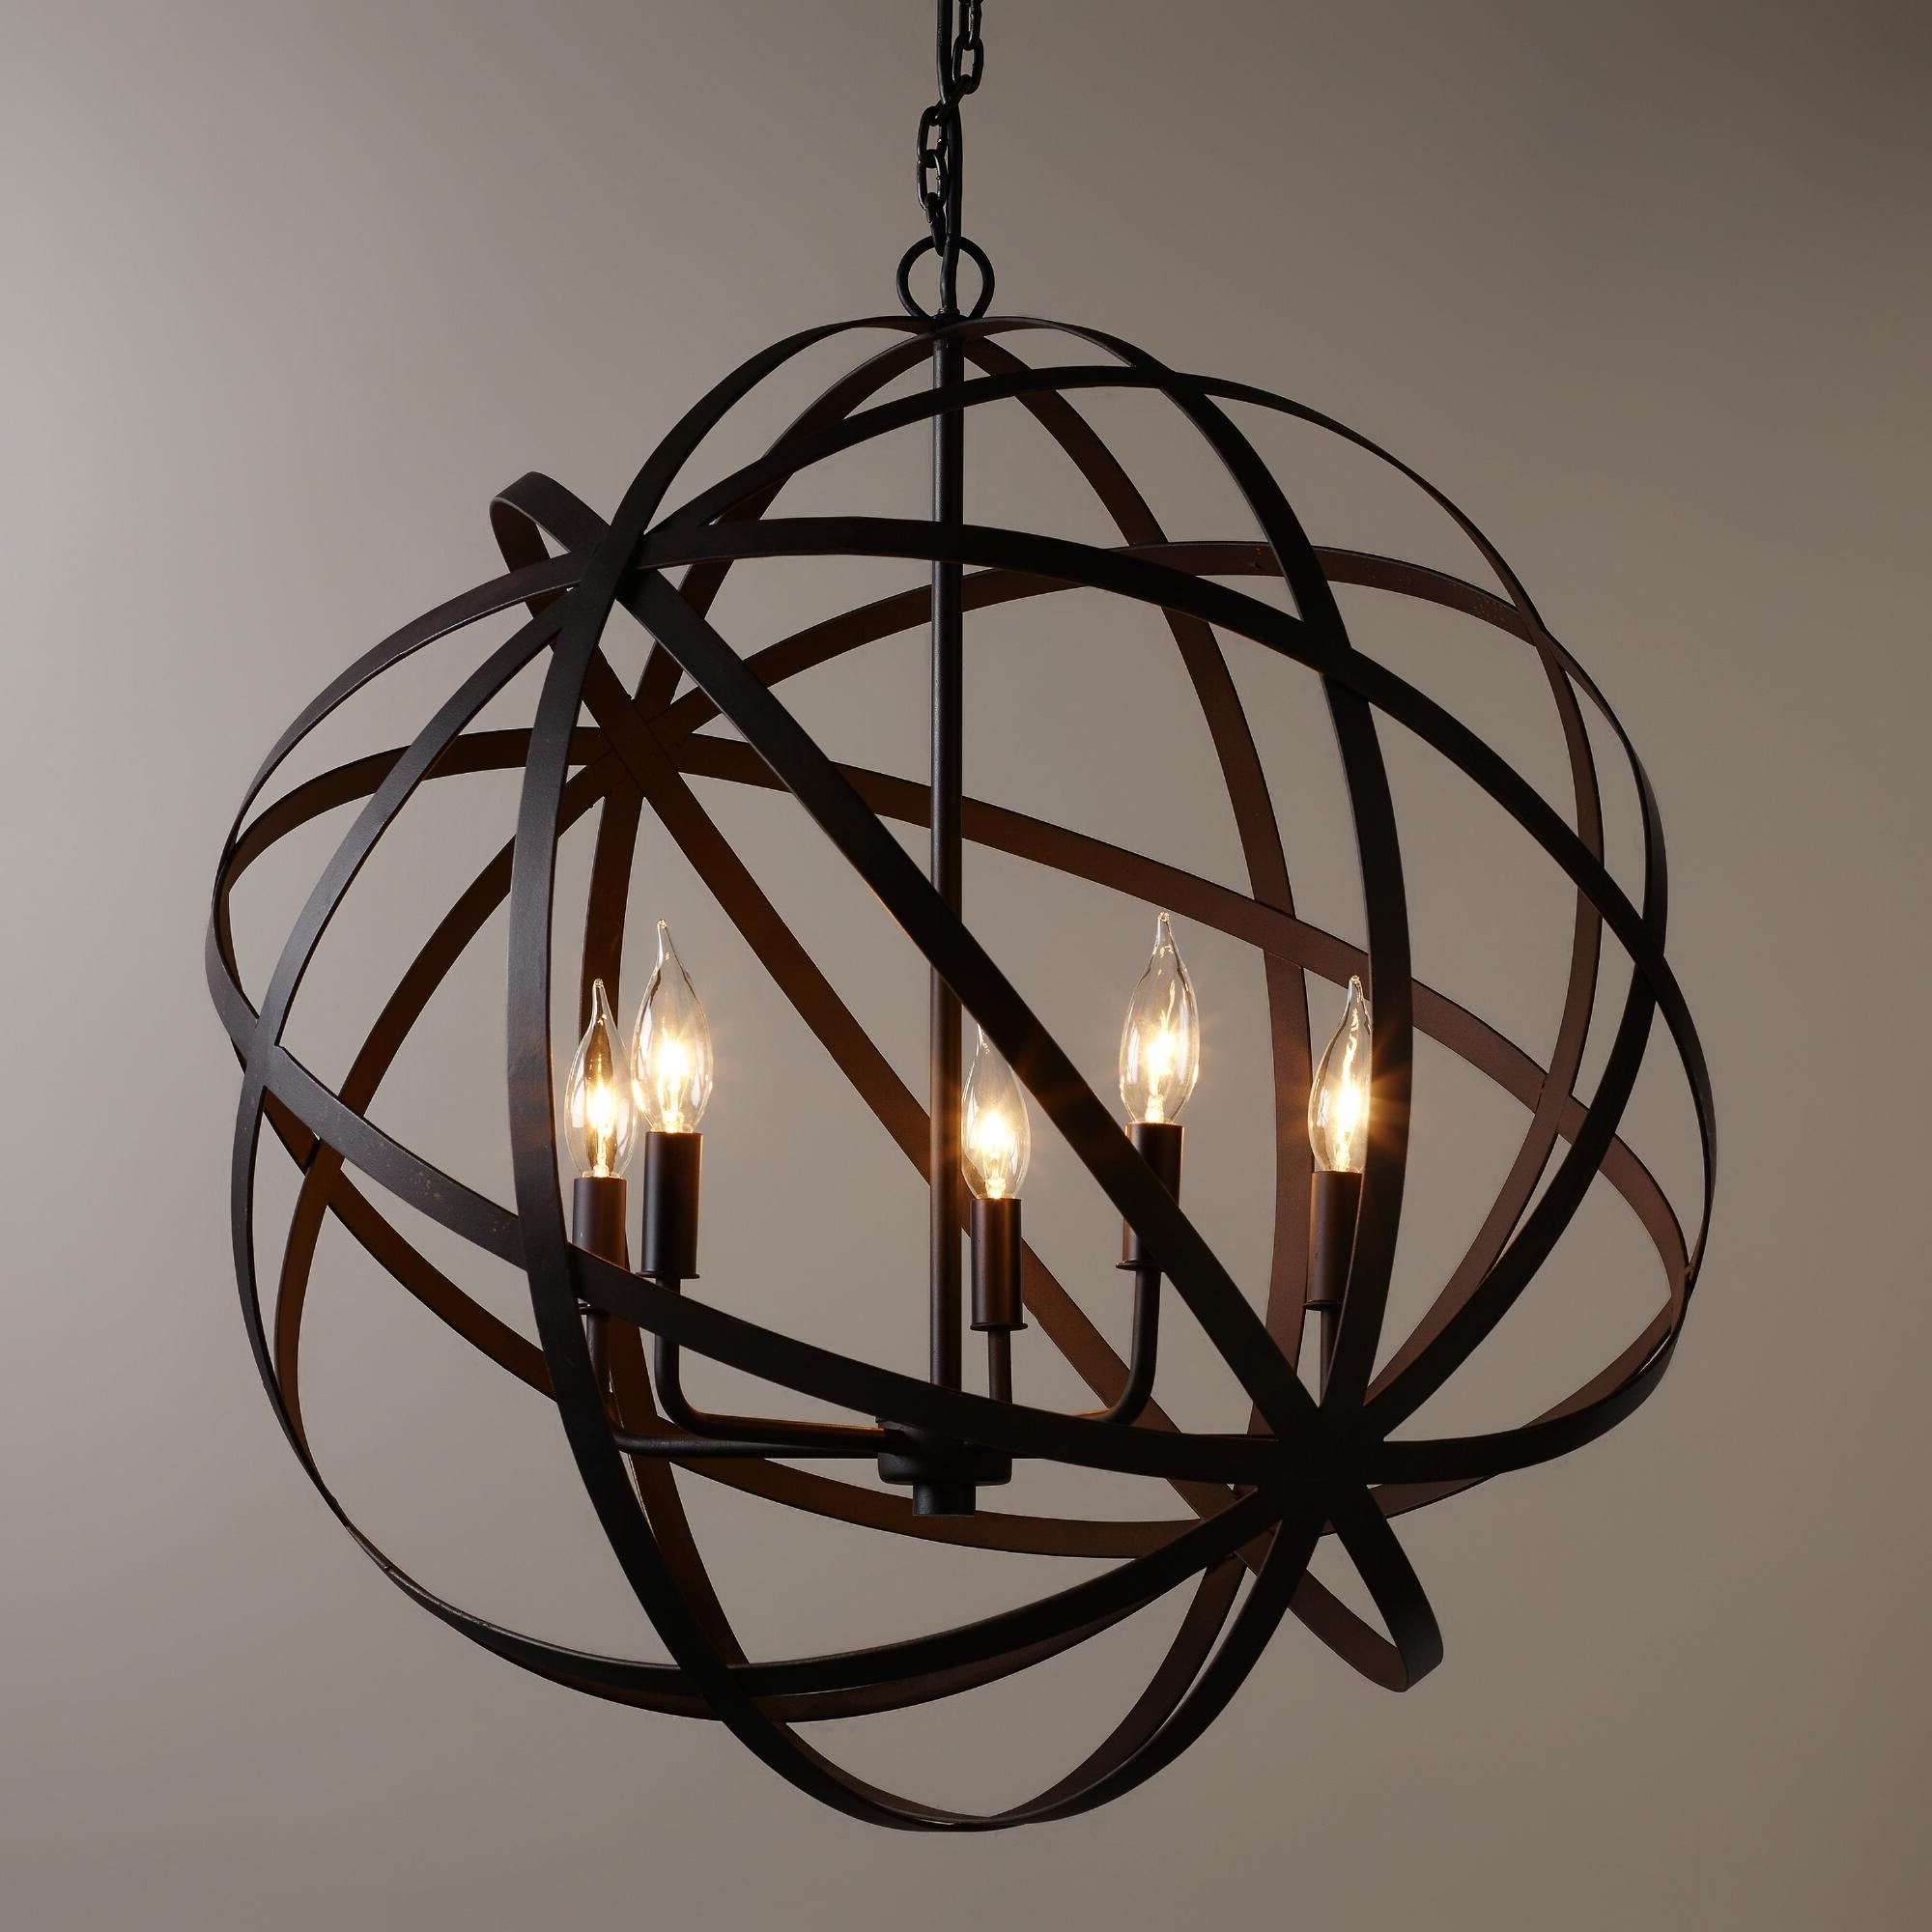 Orb Chandeliers Intended For Latest Light : Creative Orb Chandelier About Interior Designing Home Ideas (View 14 of 15)